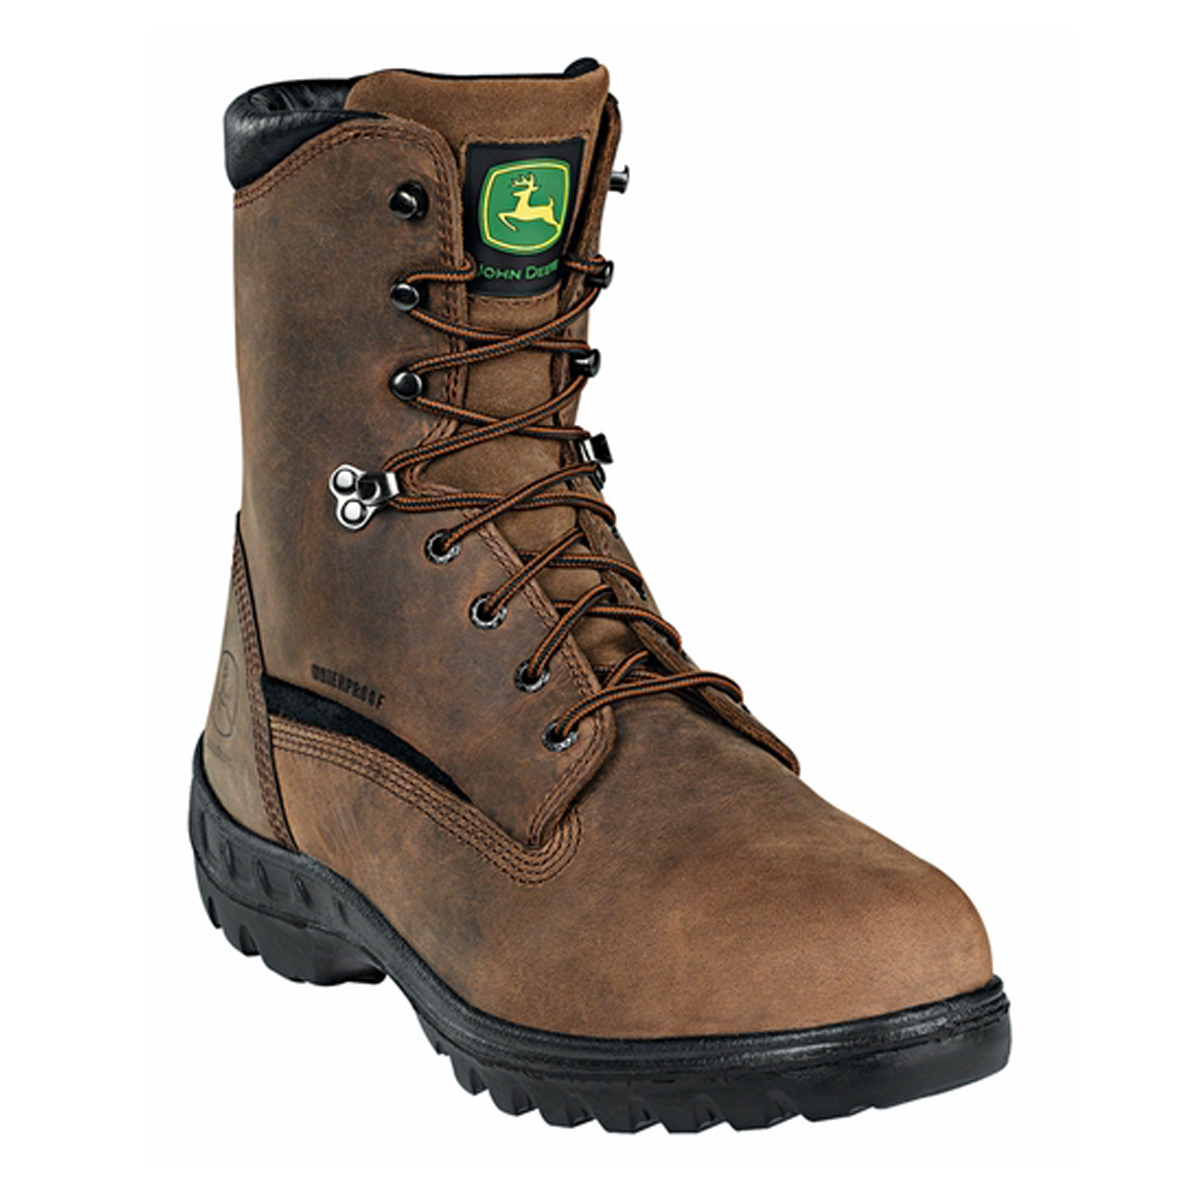 John Deere Men's BrownStone Waterproof Steel Toe Work Boots JD8601 by John Deere